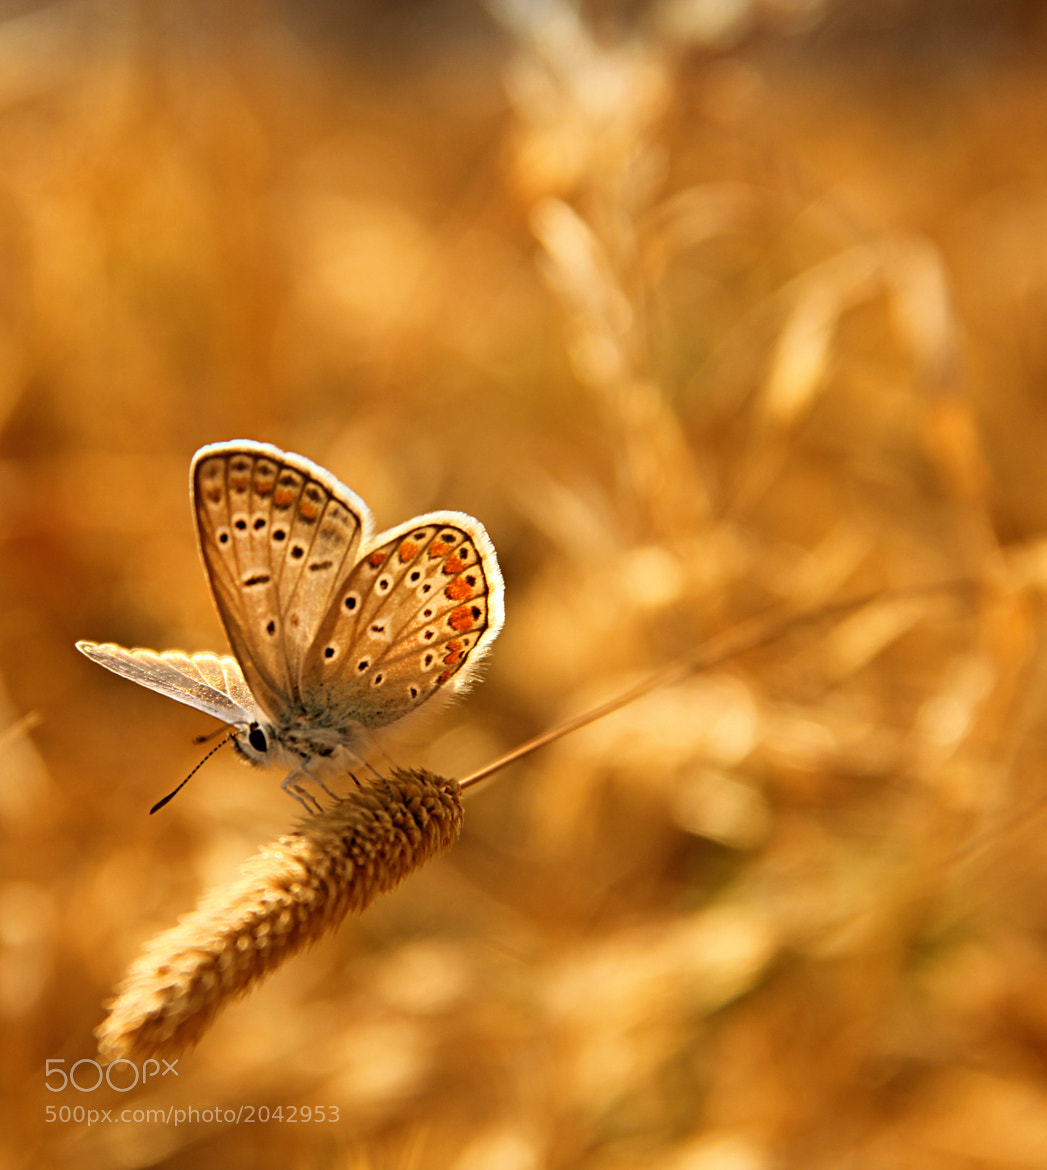 Photograph butterfly by Elin Aras on 500px